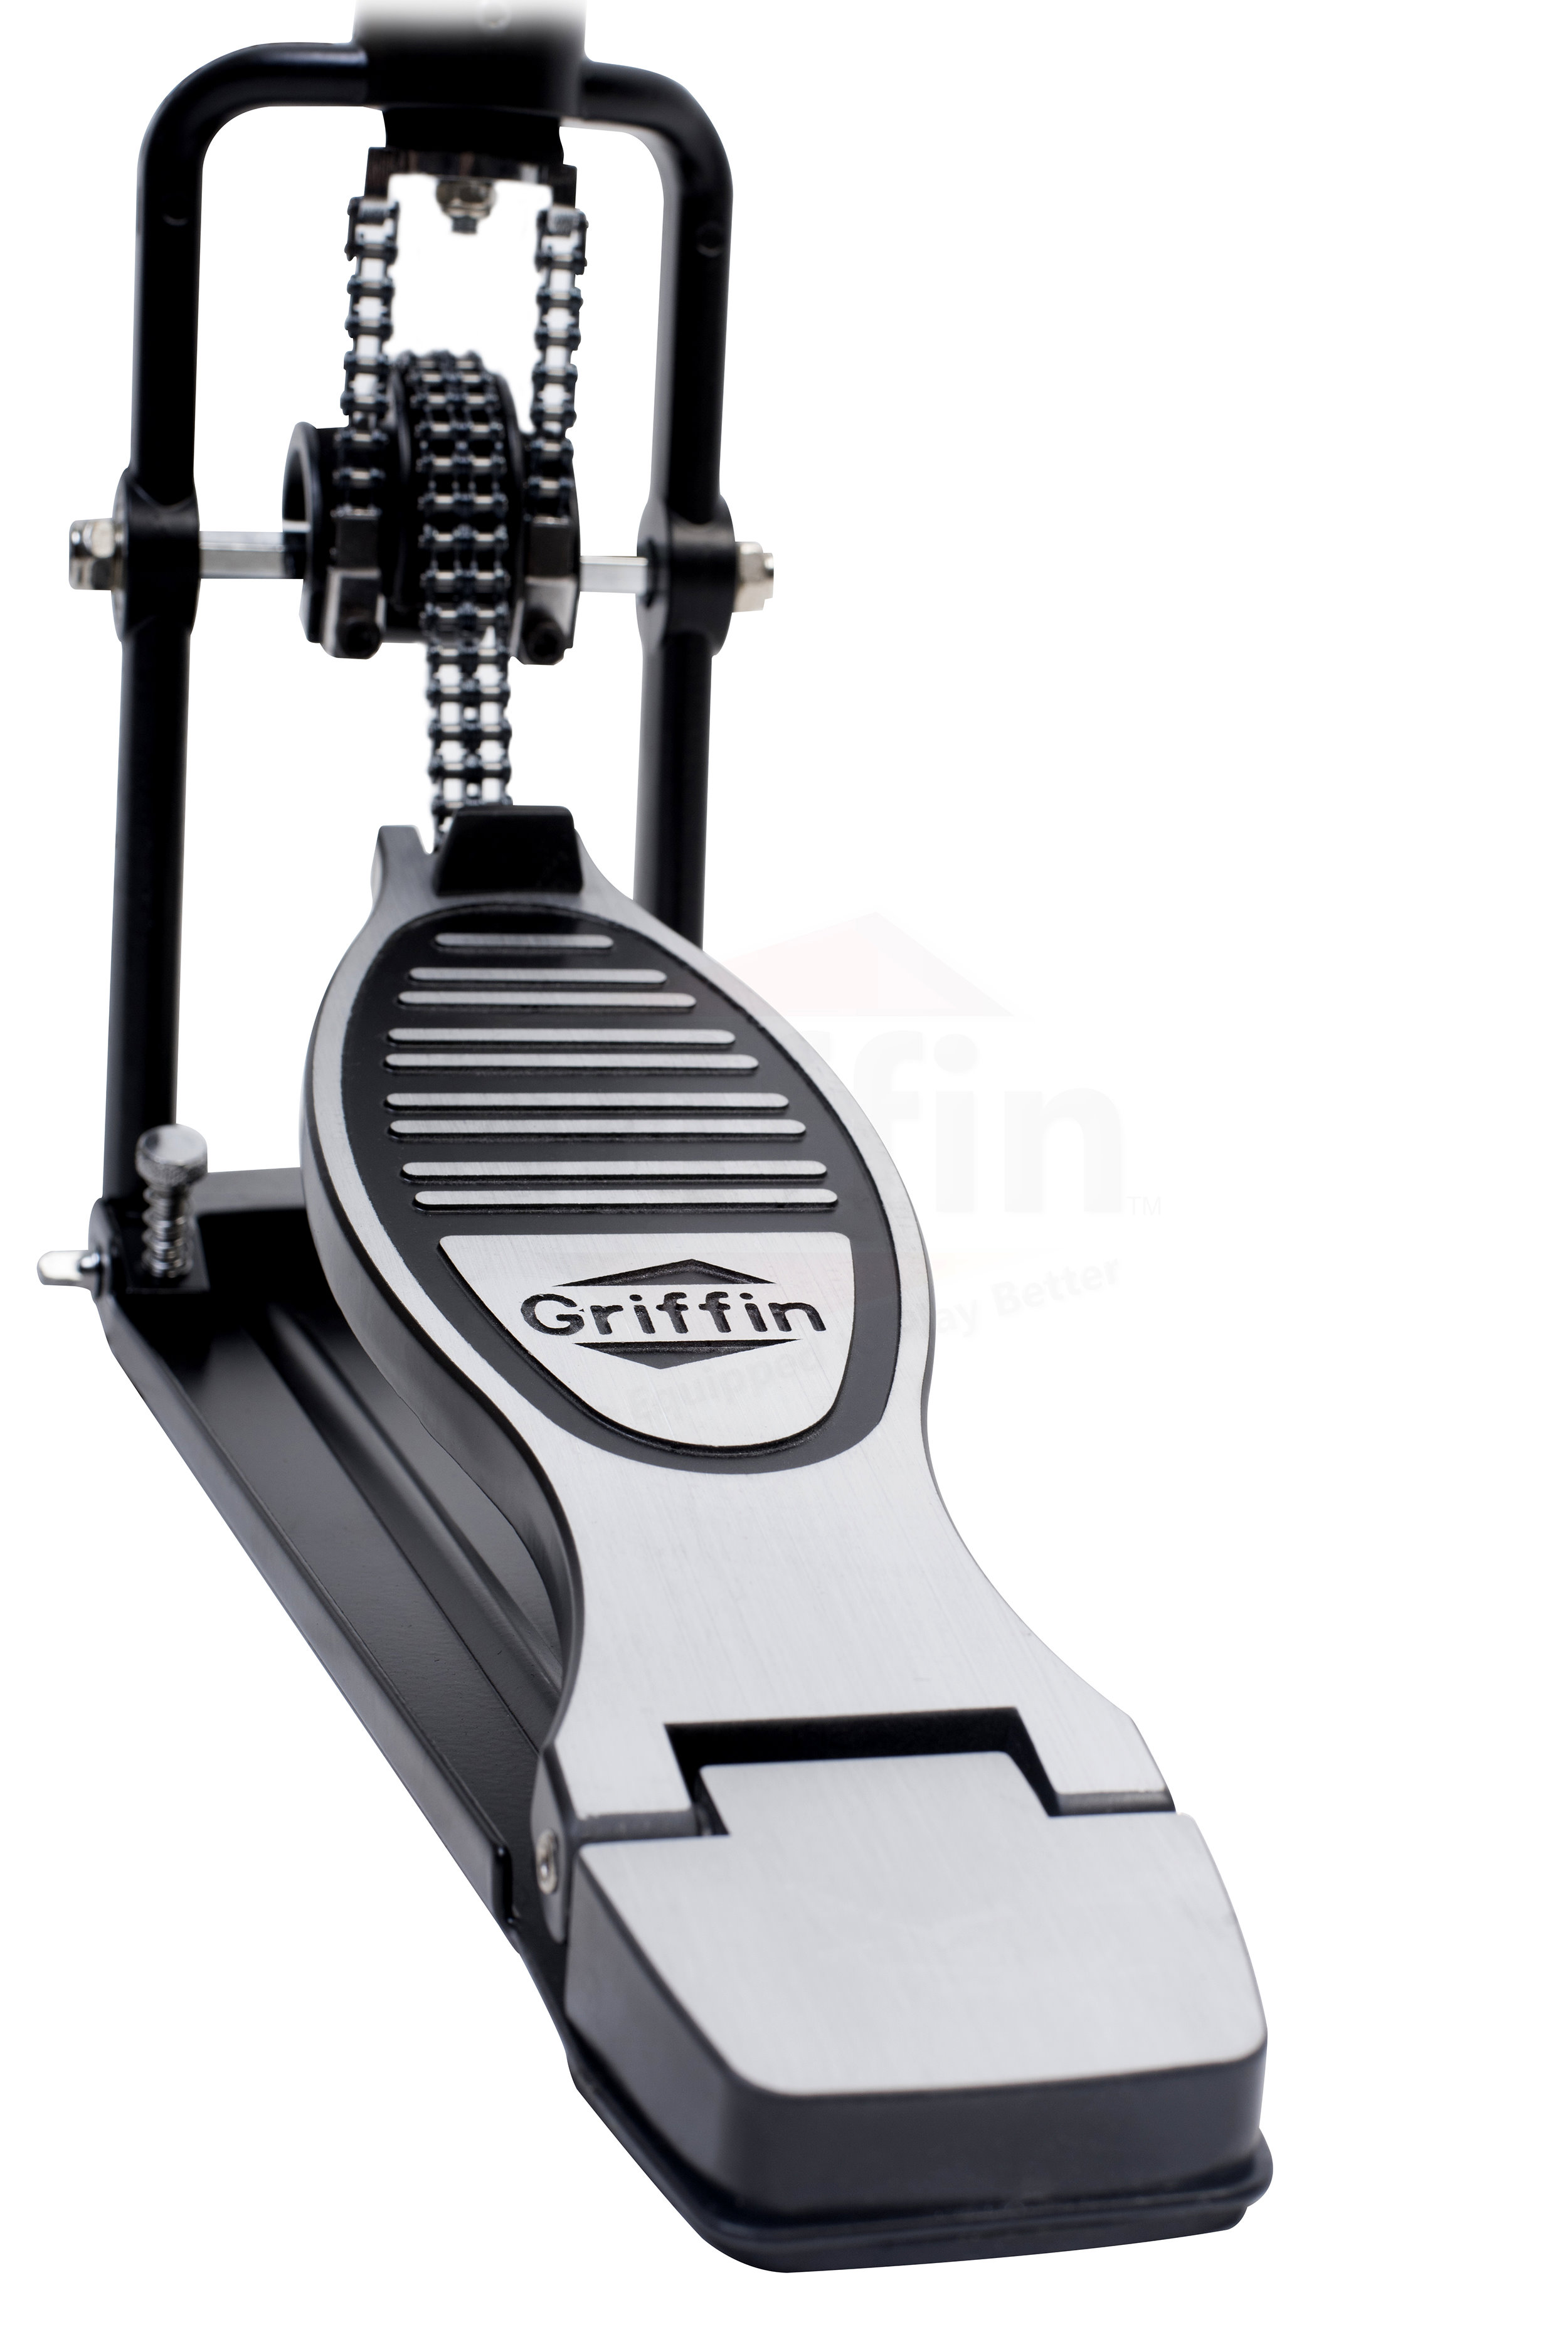 remote hi hat cymbal stand pedal heavy duty hihat drum hardware by griffin ebay. Black Bedroom Furniture Sets. Home Design Ideas